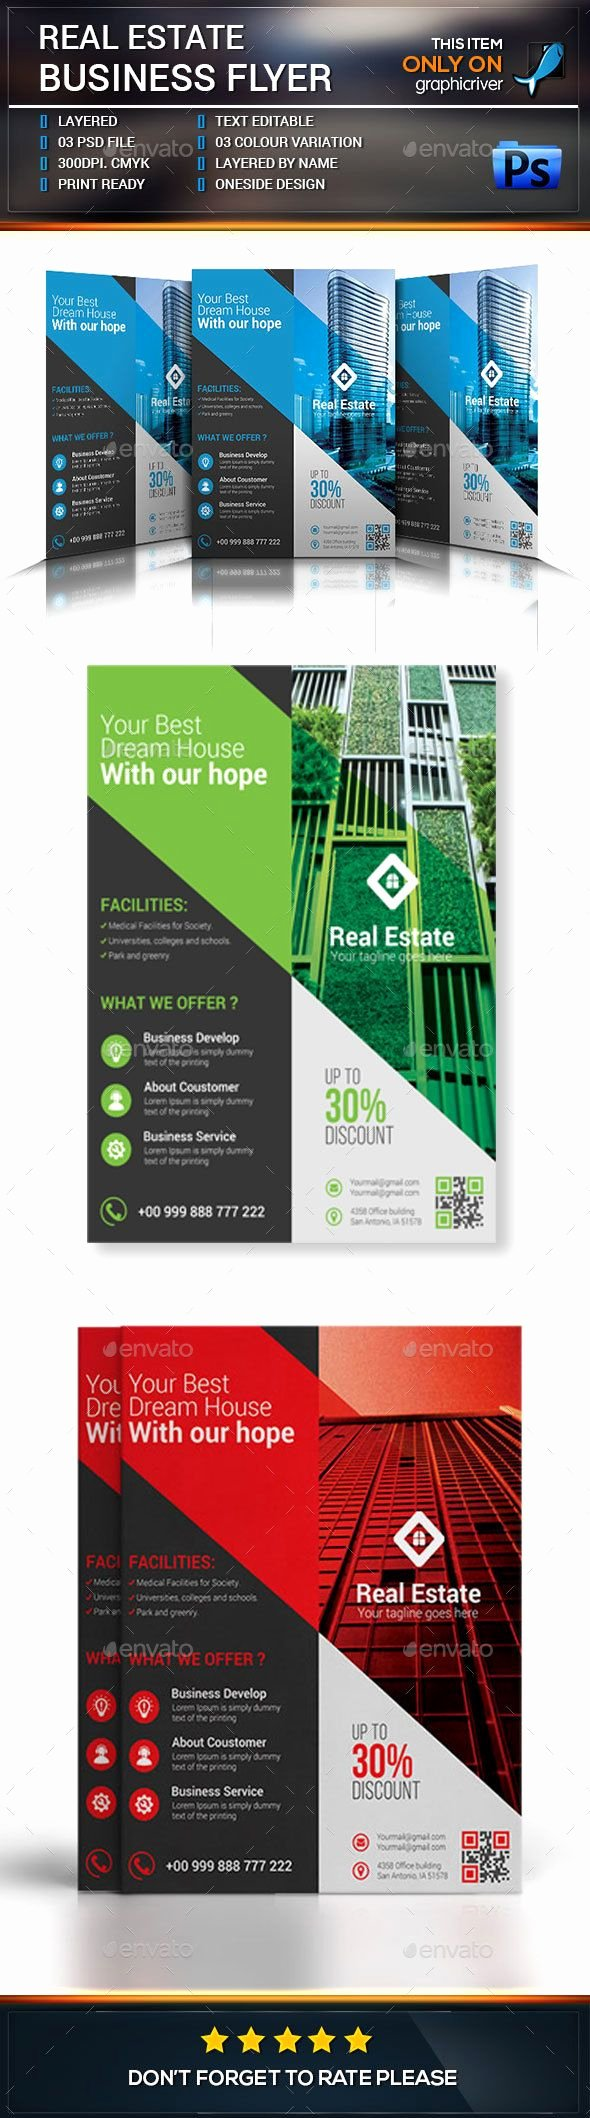 Real Estate Flyer Ideas Fresh Best 25 Real Estate Flyers Ideas On Pinterest